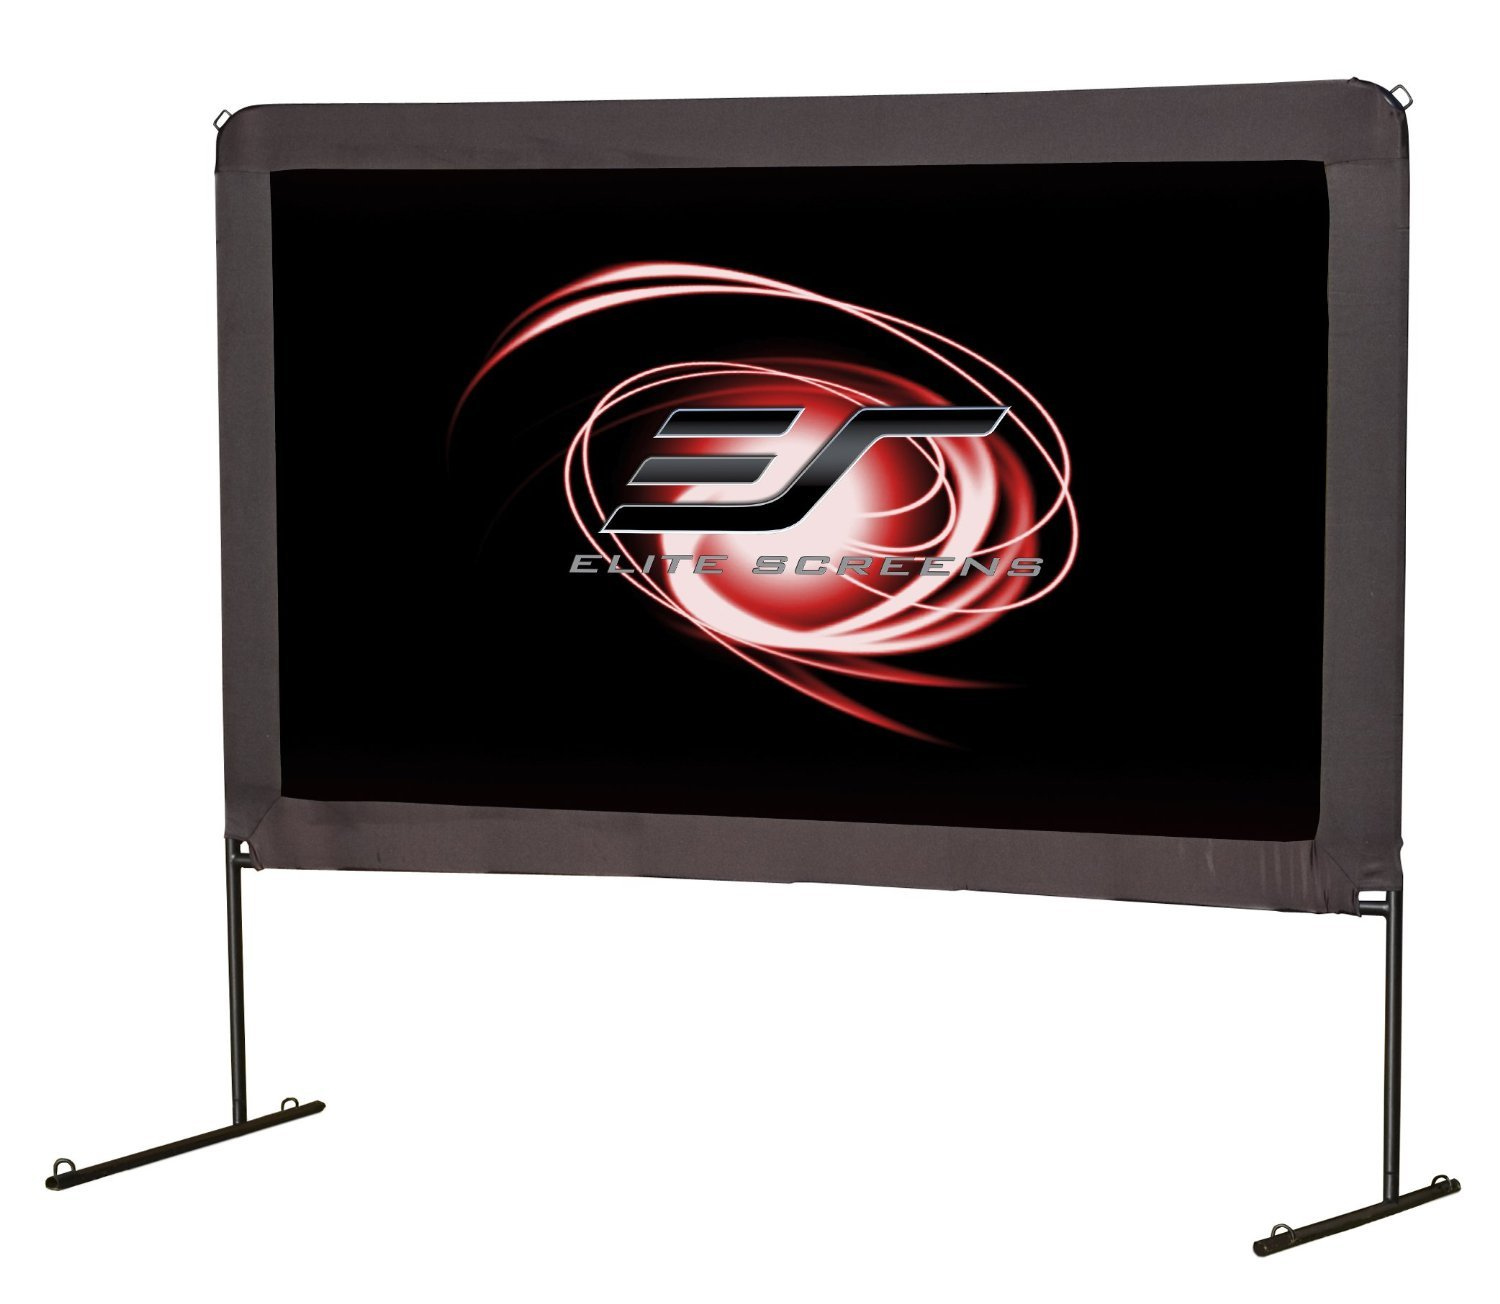 Elite Screens Yard Master 2, 110-inch 16:9, Foldable Outdoor Front Projection Movie Projector Screen, OMS110H2 Elitescreens